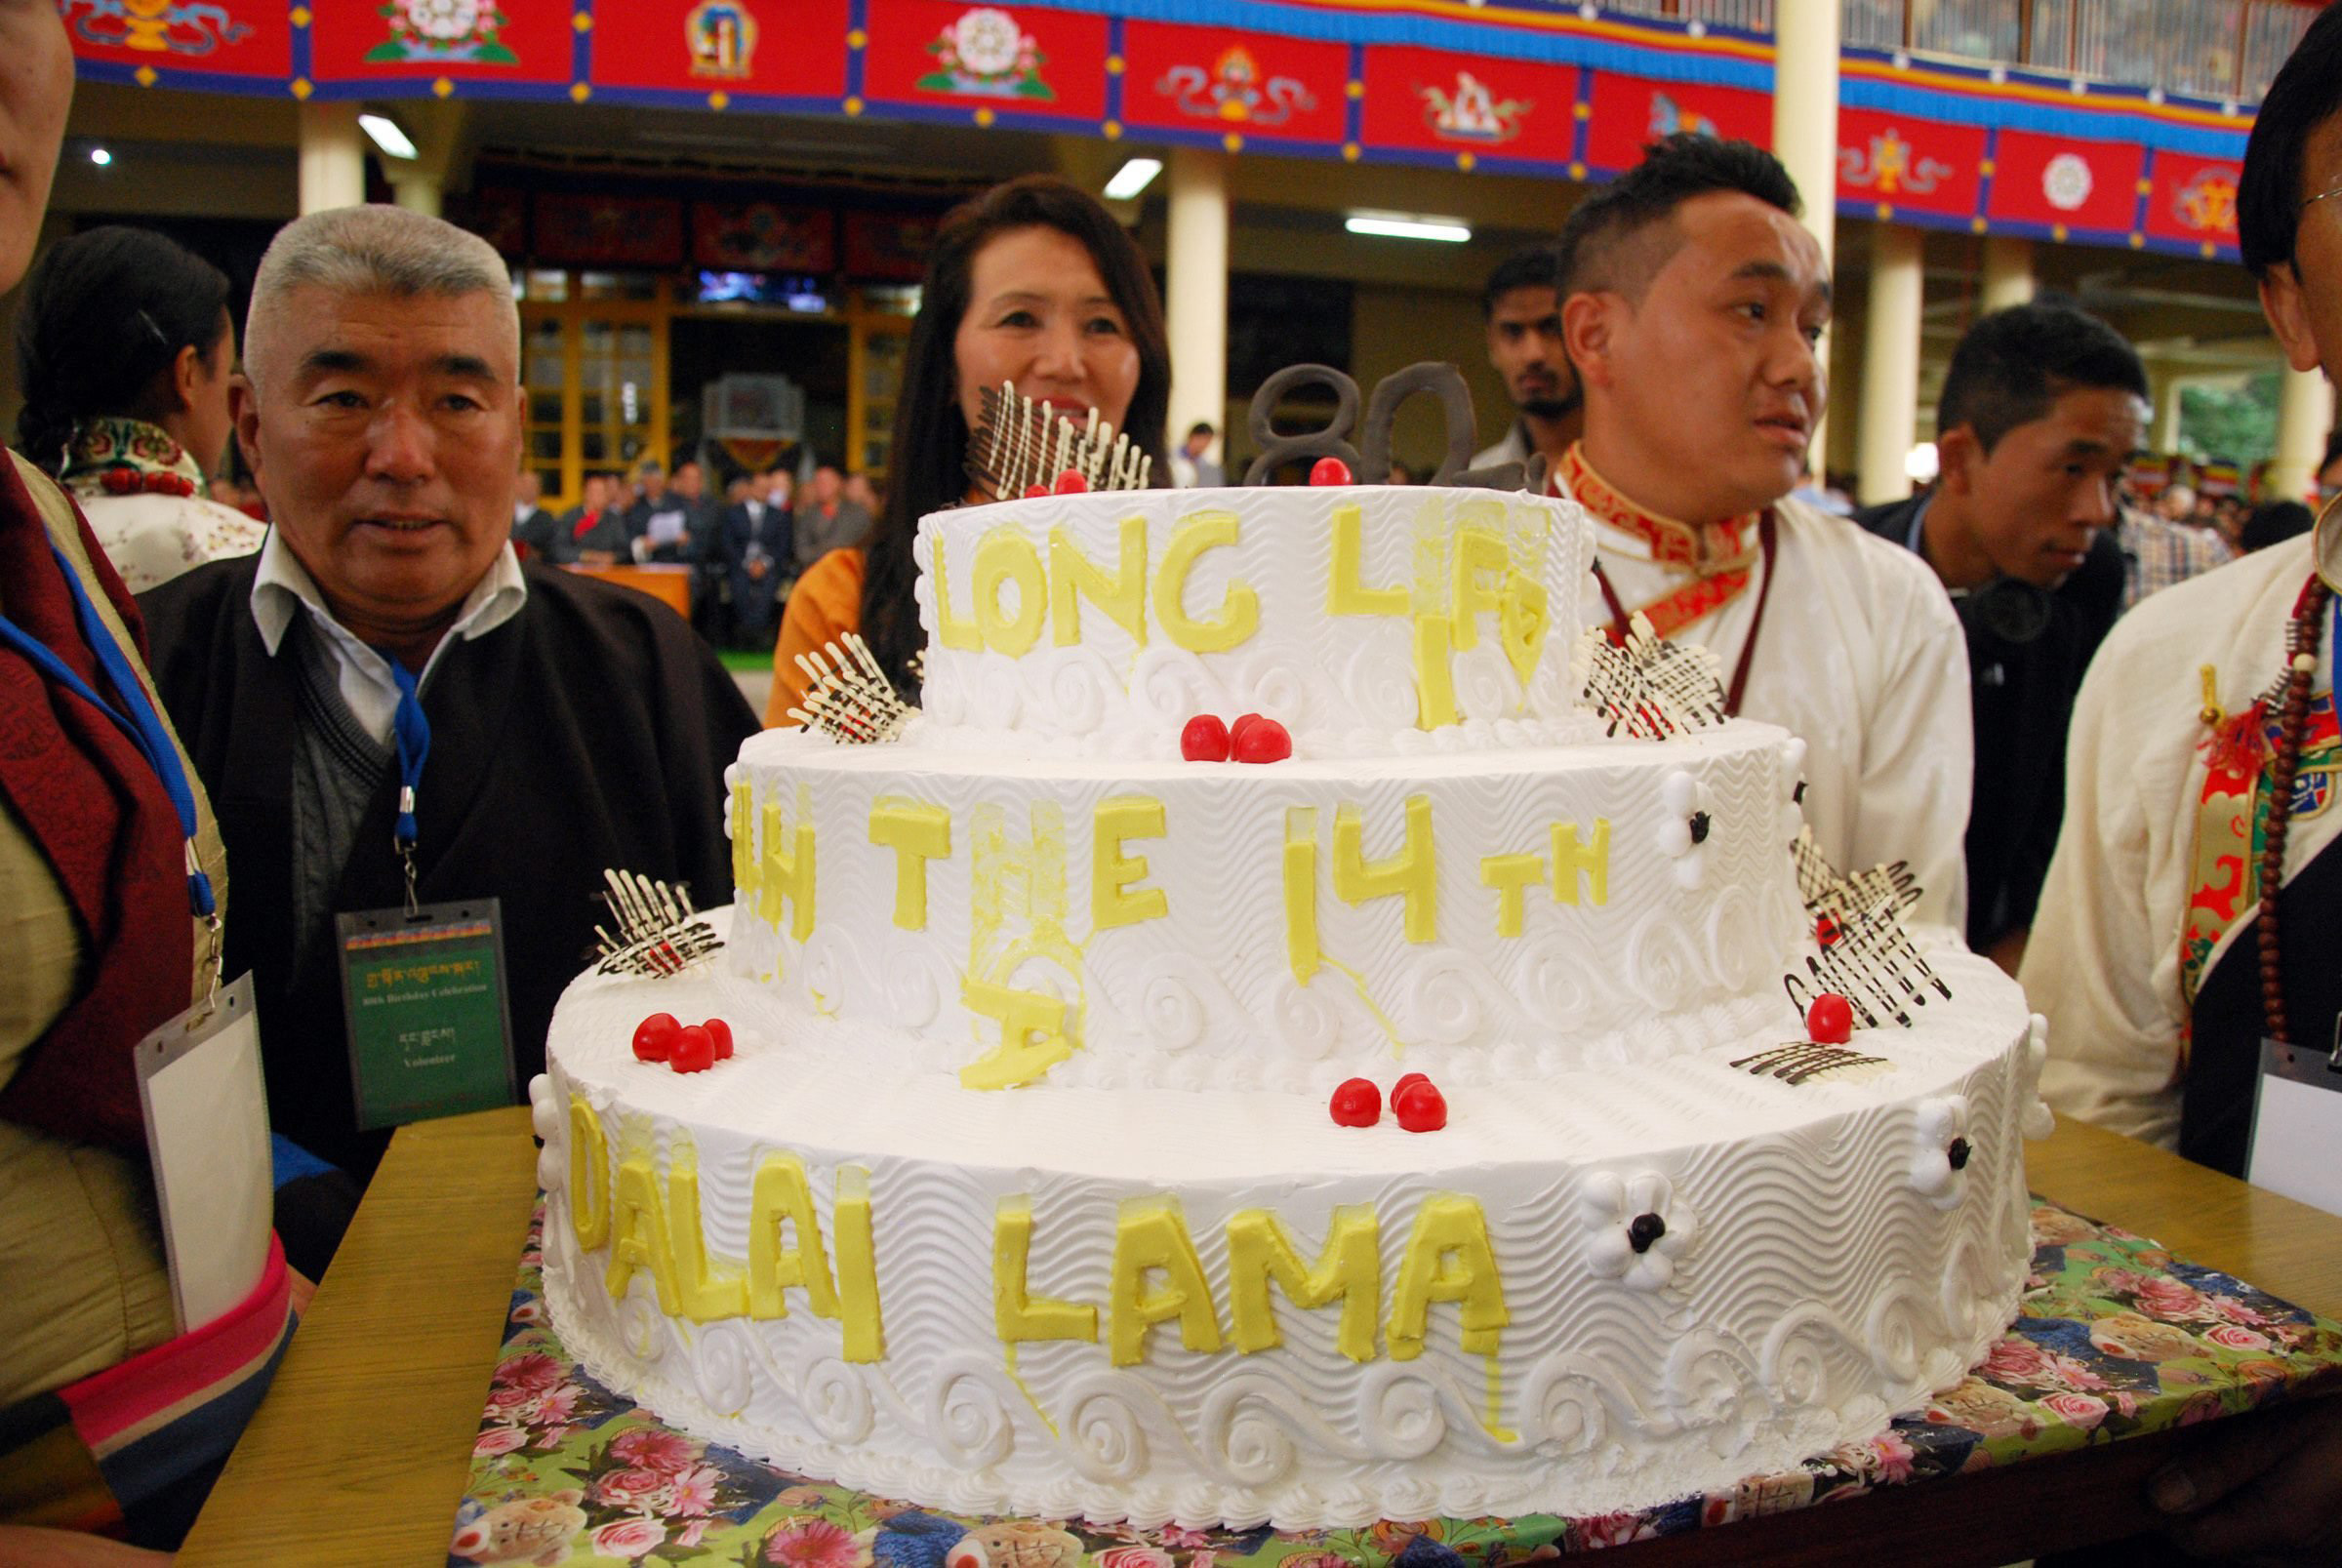 Tibetans living-in-exile in India, stand next to a birthday cake as they celebrate the Dalai Lama's 80th birthday in Dharmsala, India on July 6, 2015.